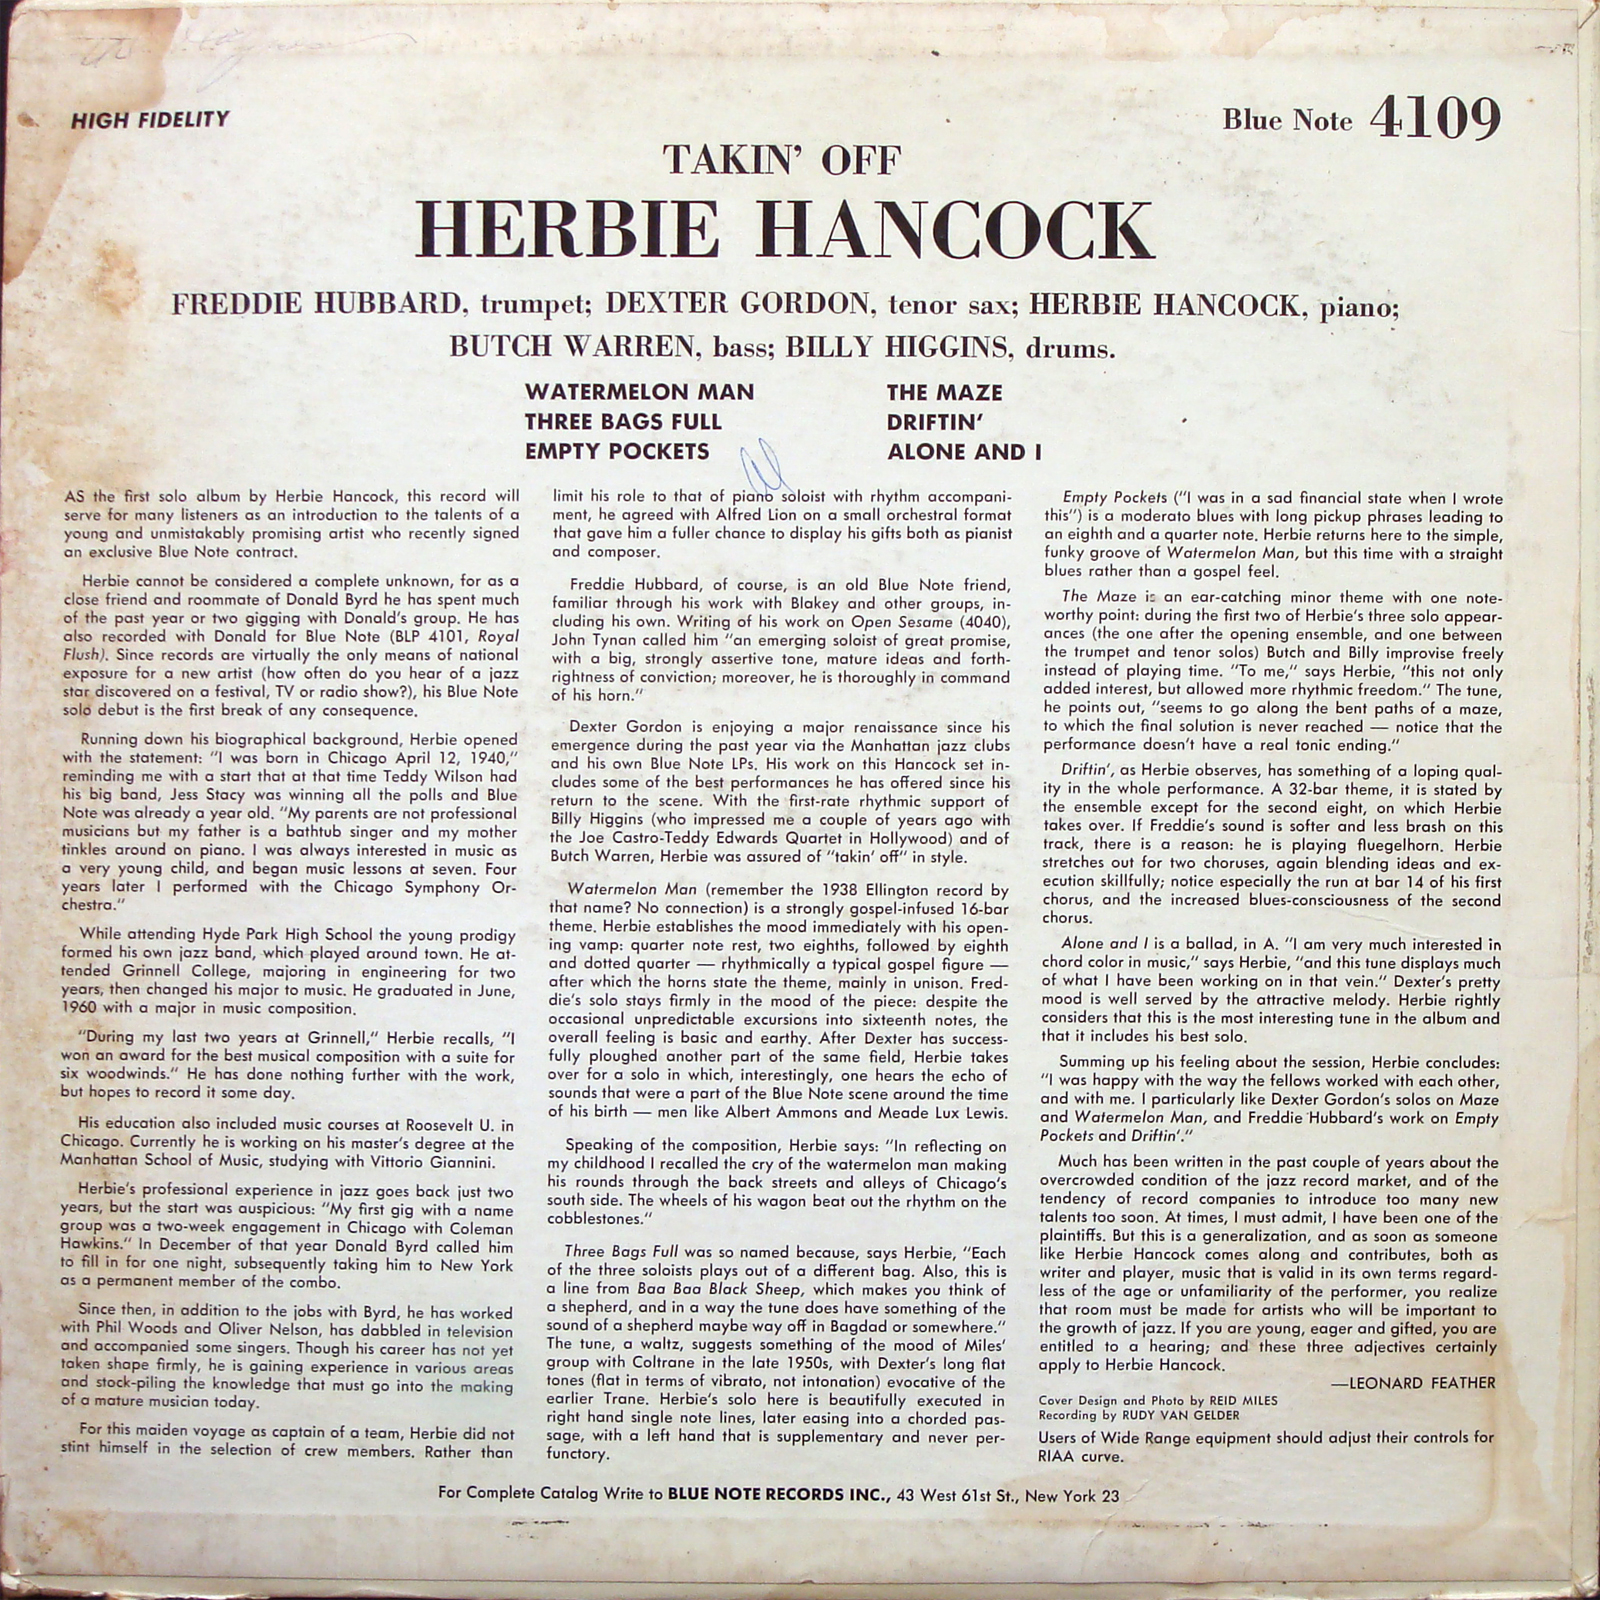 Herbie Hancock Takin Off Lp Blue Note 4109 Us 62 Ny Rvg